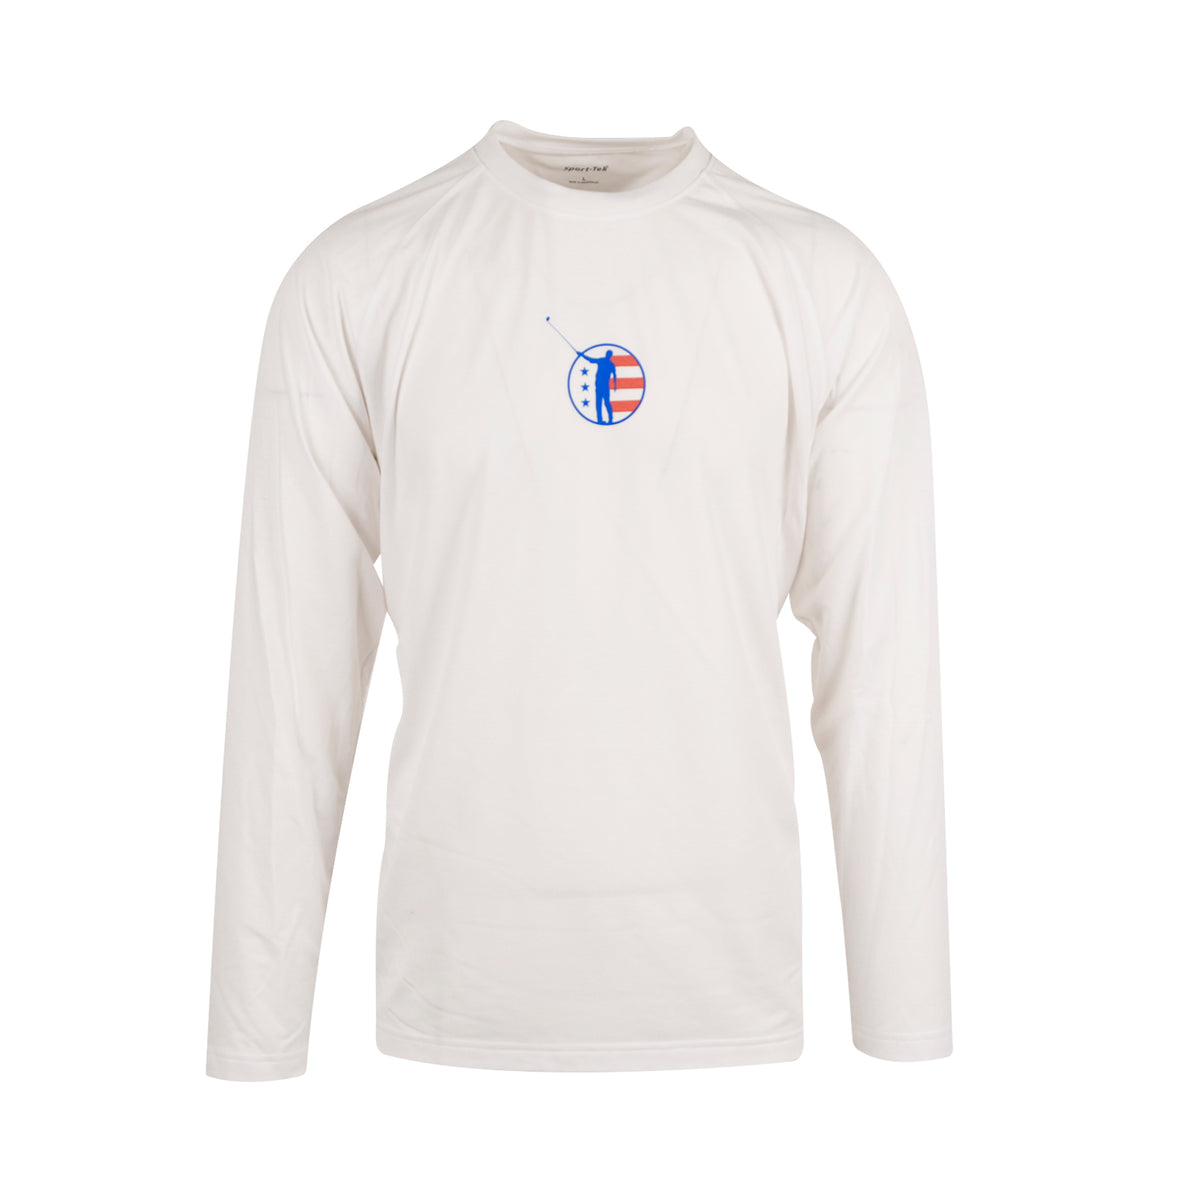 Team USA | Long Sleeve T-shirt (S & XXL remaining)